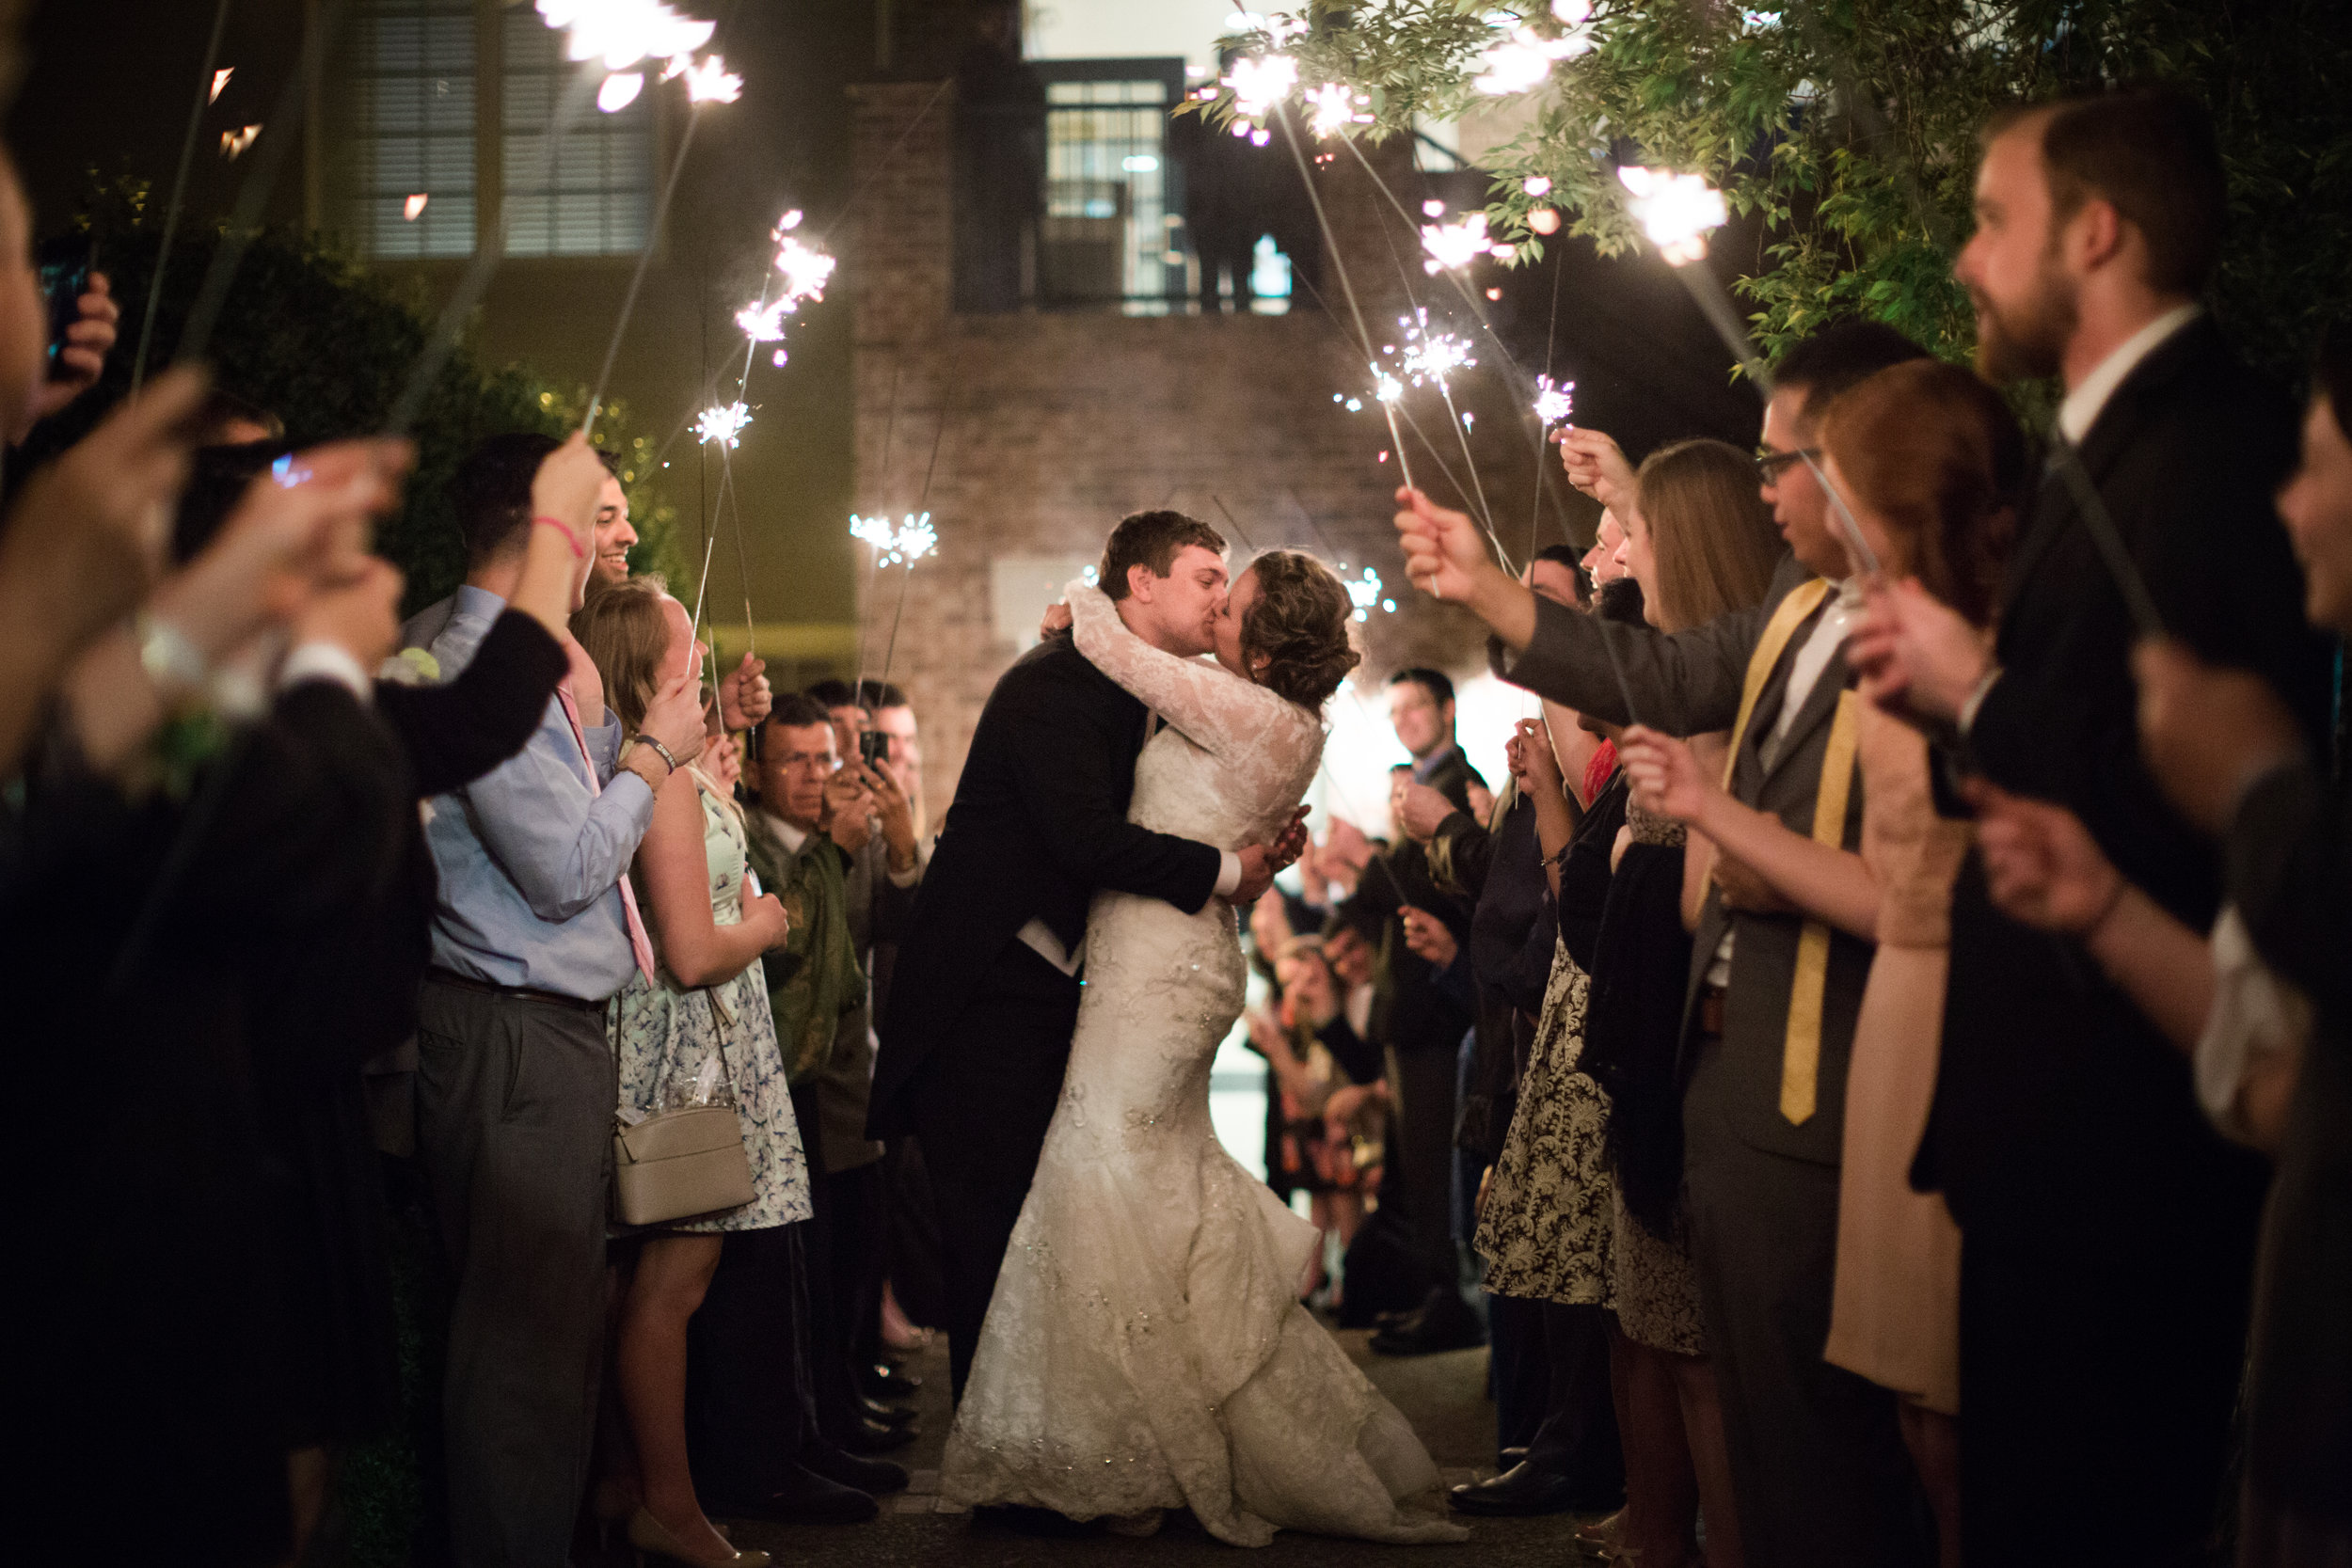 """Hannah and Ryan have been our friends from when we studied together at Georgia Tech. They went to my twin sister's wedding and now Joseph and I had the pleasure to have them come to our wedding as our photographers. They were outstanding.  Hannah met with me and customized her hours to make sure they took the best pictures possible. They sent us their itinerary, competitive cost, & a wedding questionnaire.  Day of they arrived and took beyond incredible pictures. They had professional attire, tools, and an awesome attitude.  After the wedding they even sent Joseph & I a gift to remember our special day. This was a total surprise!  We can not recommend them enough. They go above and beyond. We will definitely ask that they be our photographers again.  Thank you Hannah & Ryan!!""  -Jenny"